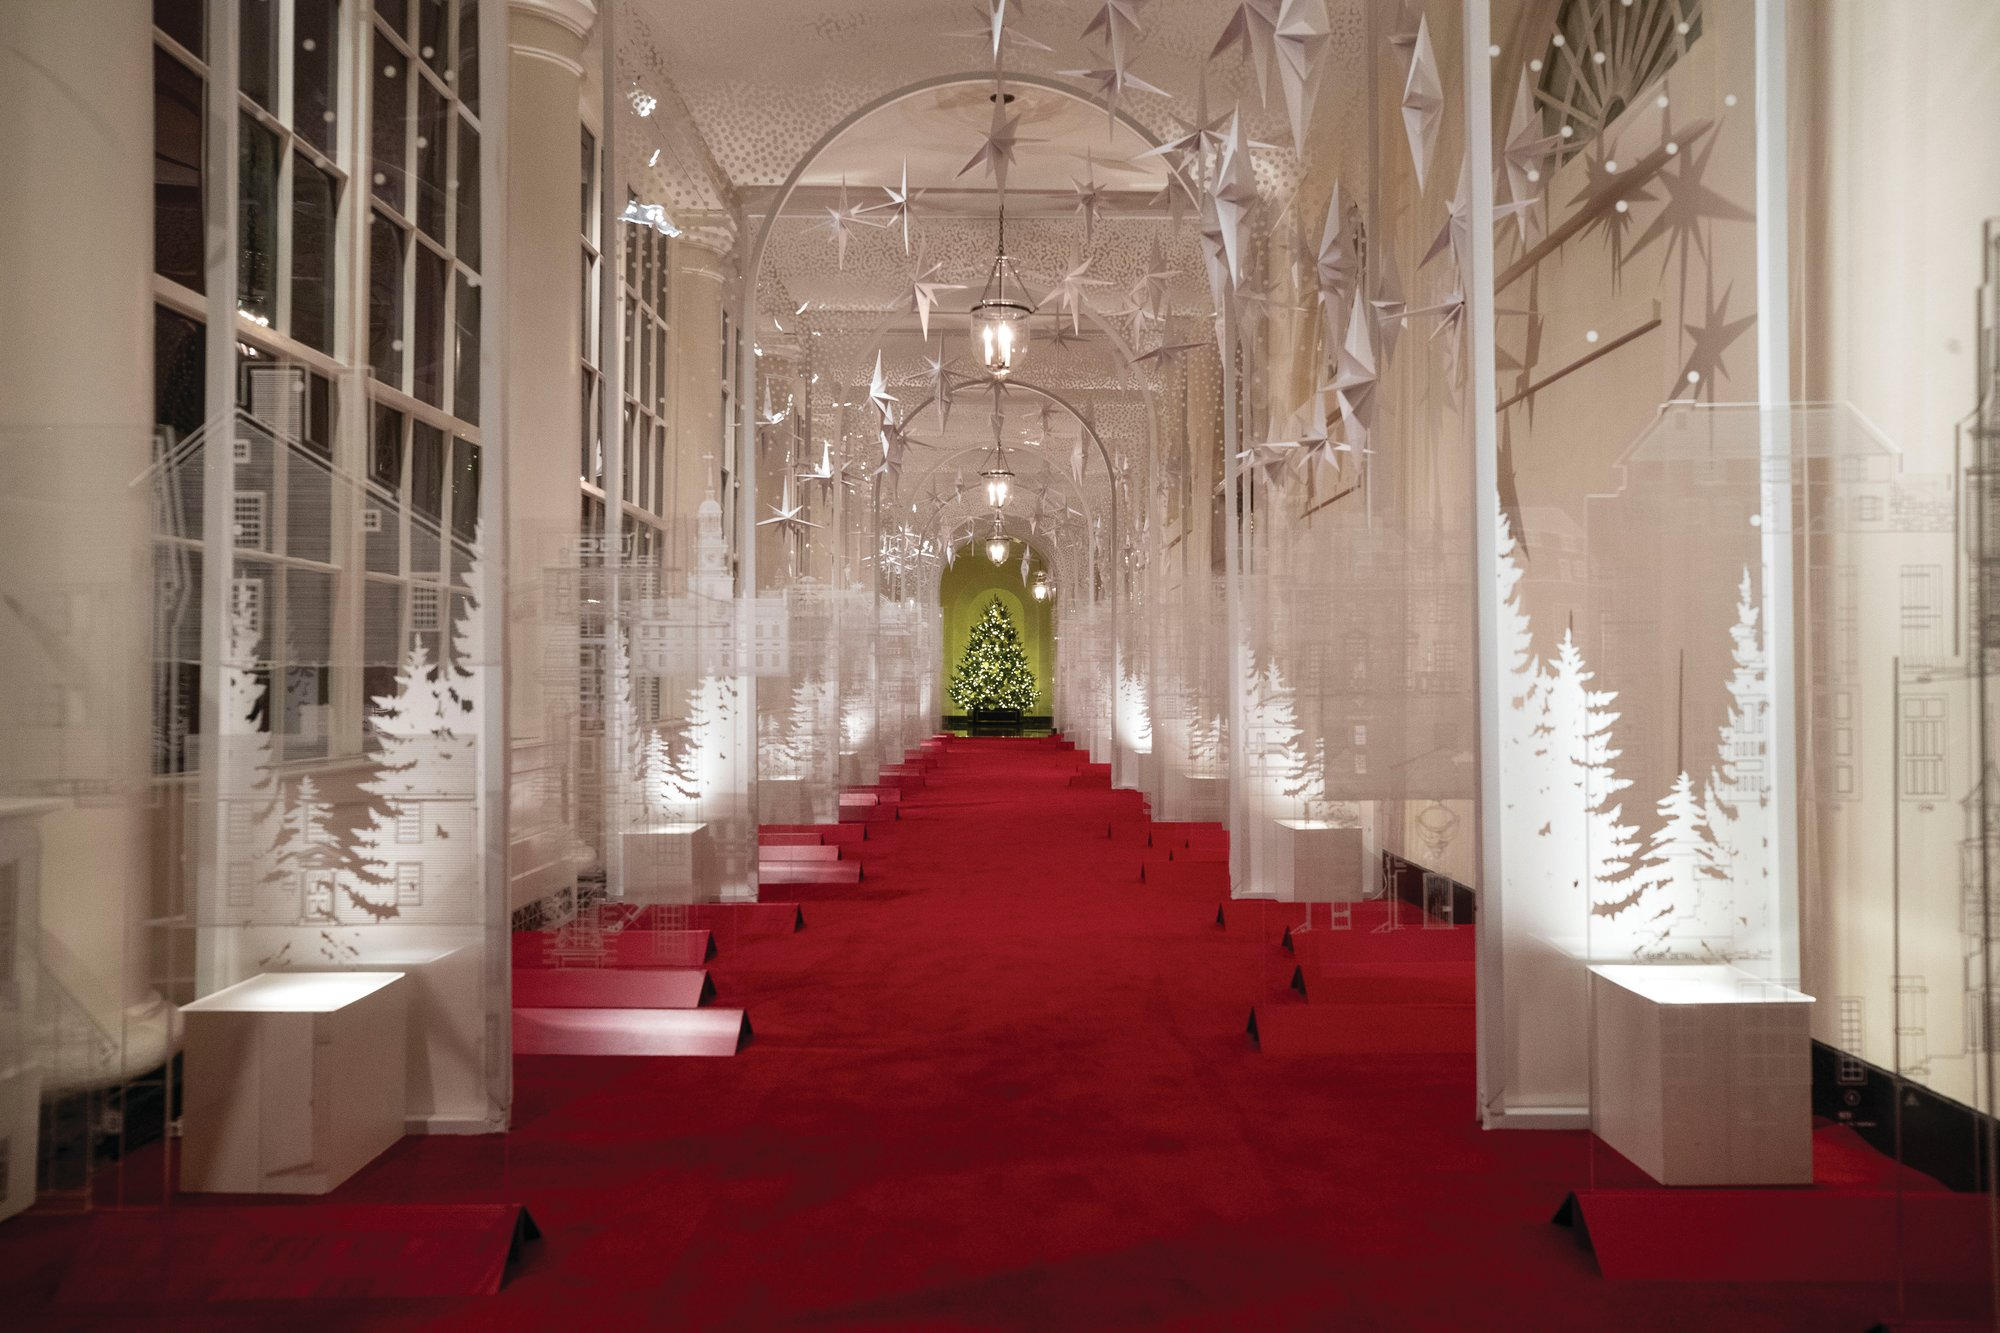 PHOTOS BY THE ASSOCIATED PRESS  The East Colonnade of the White House decorated for Christmas is lined with double rows of see-through panels etched with more than 60 examples of American design, innovation and architecture.